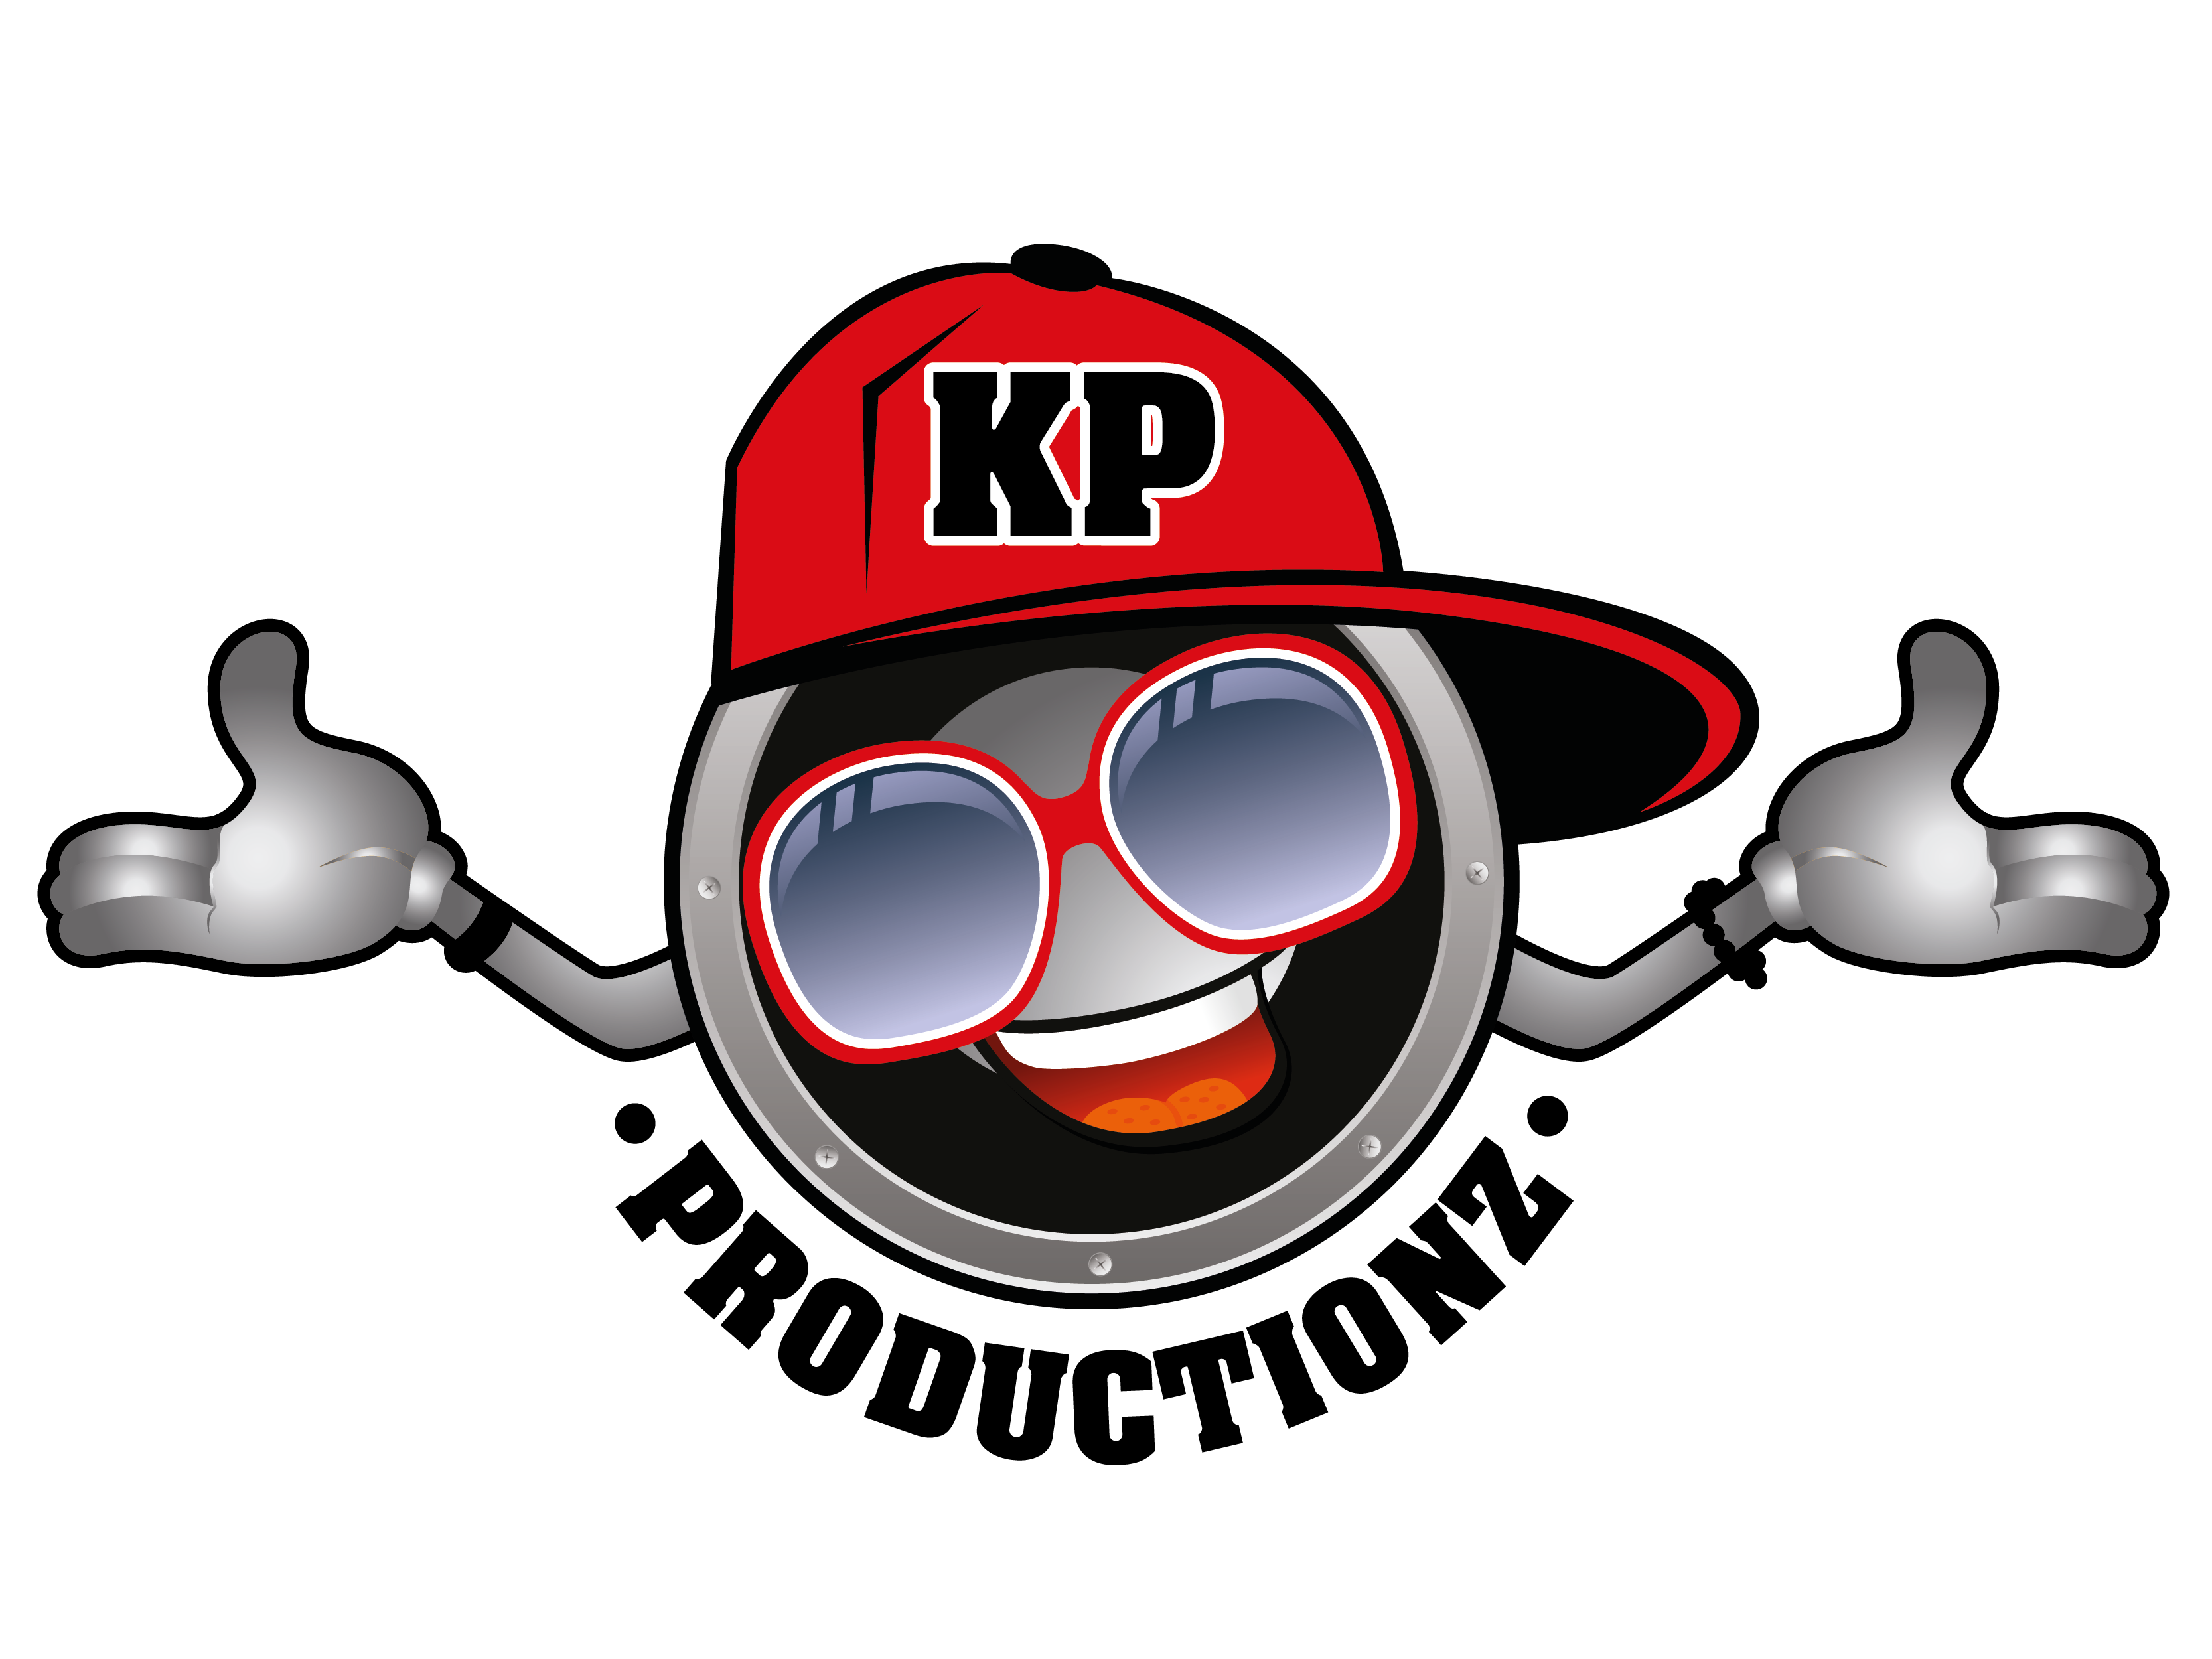 KP Productionz is a music & entertainment company located